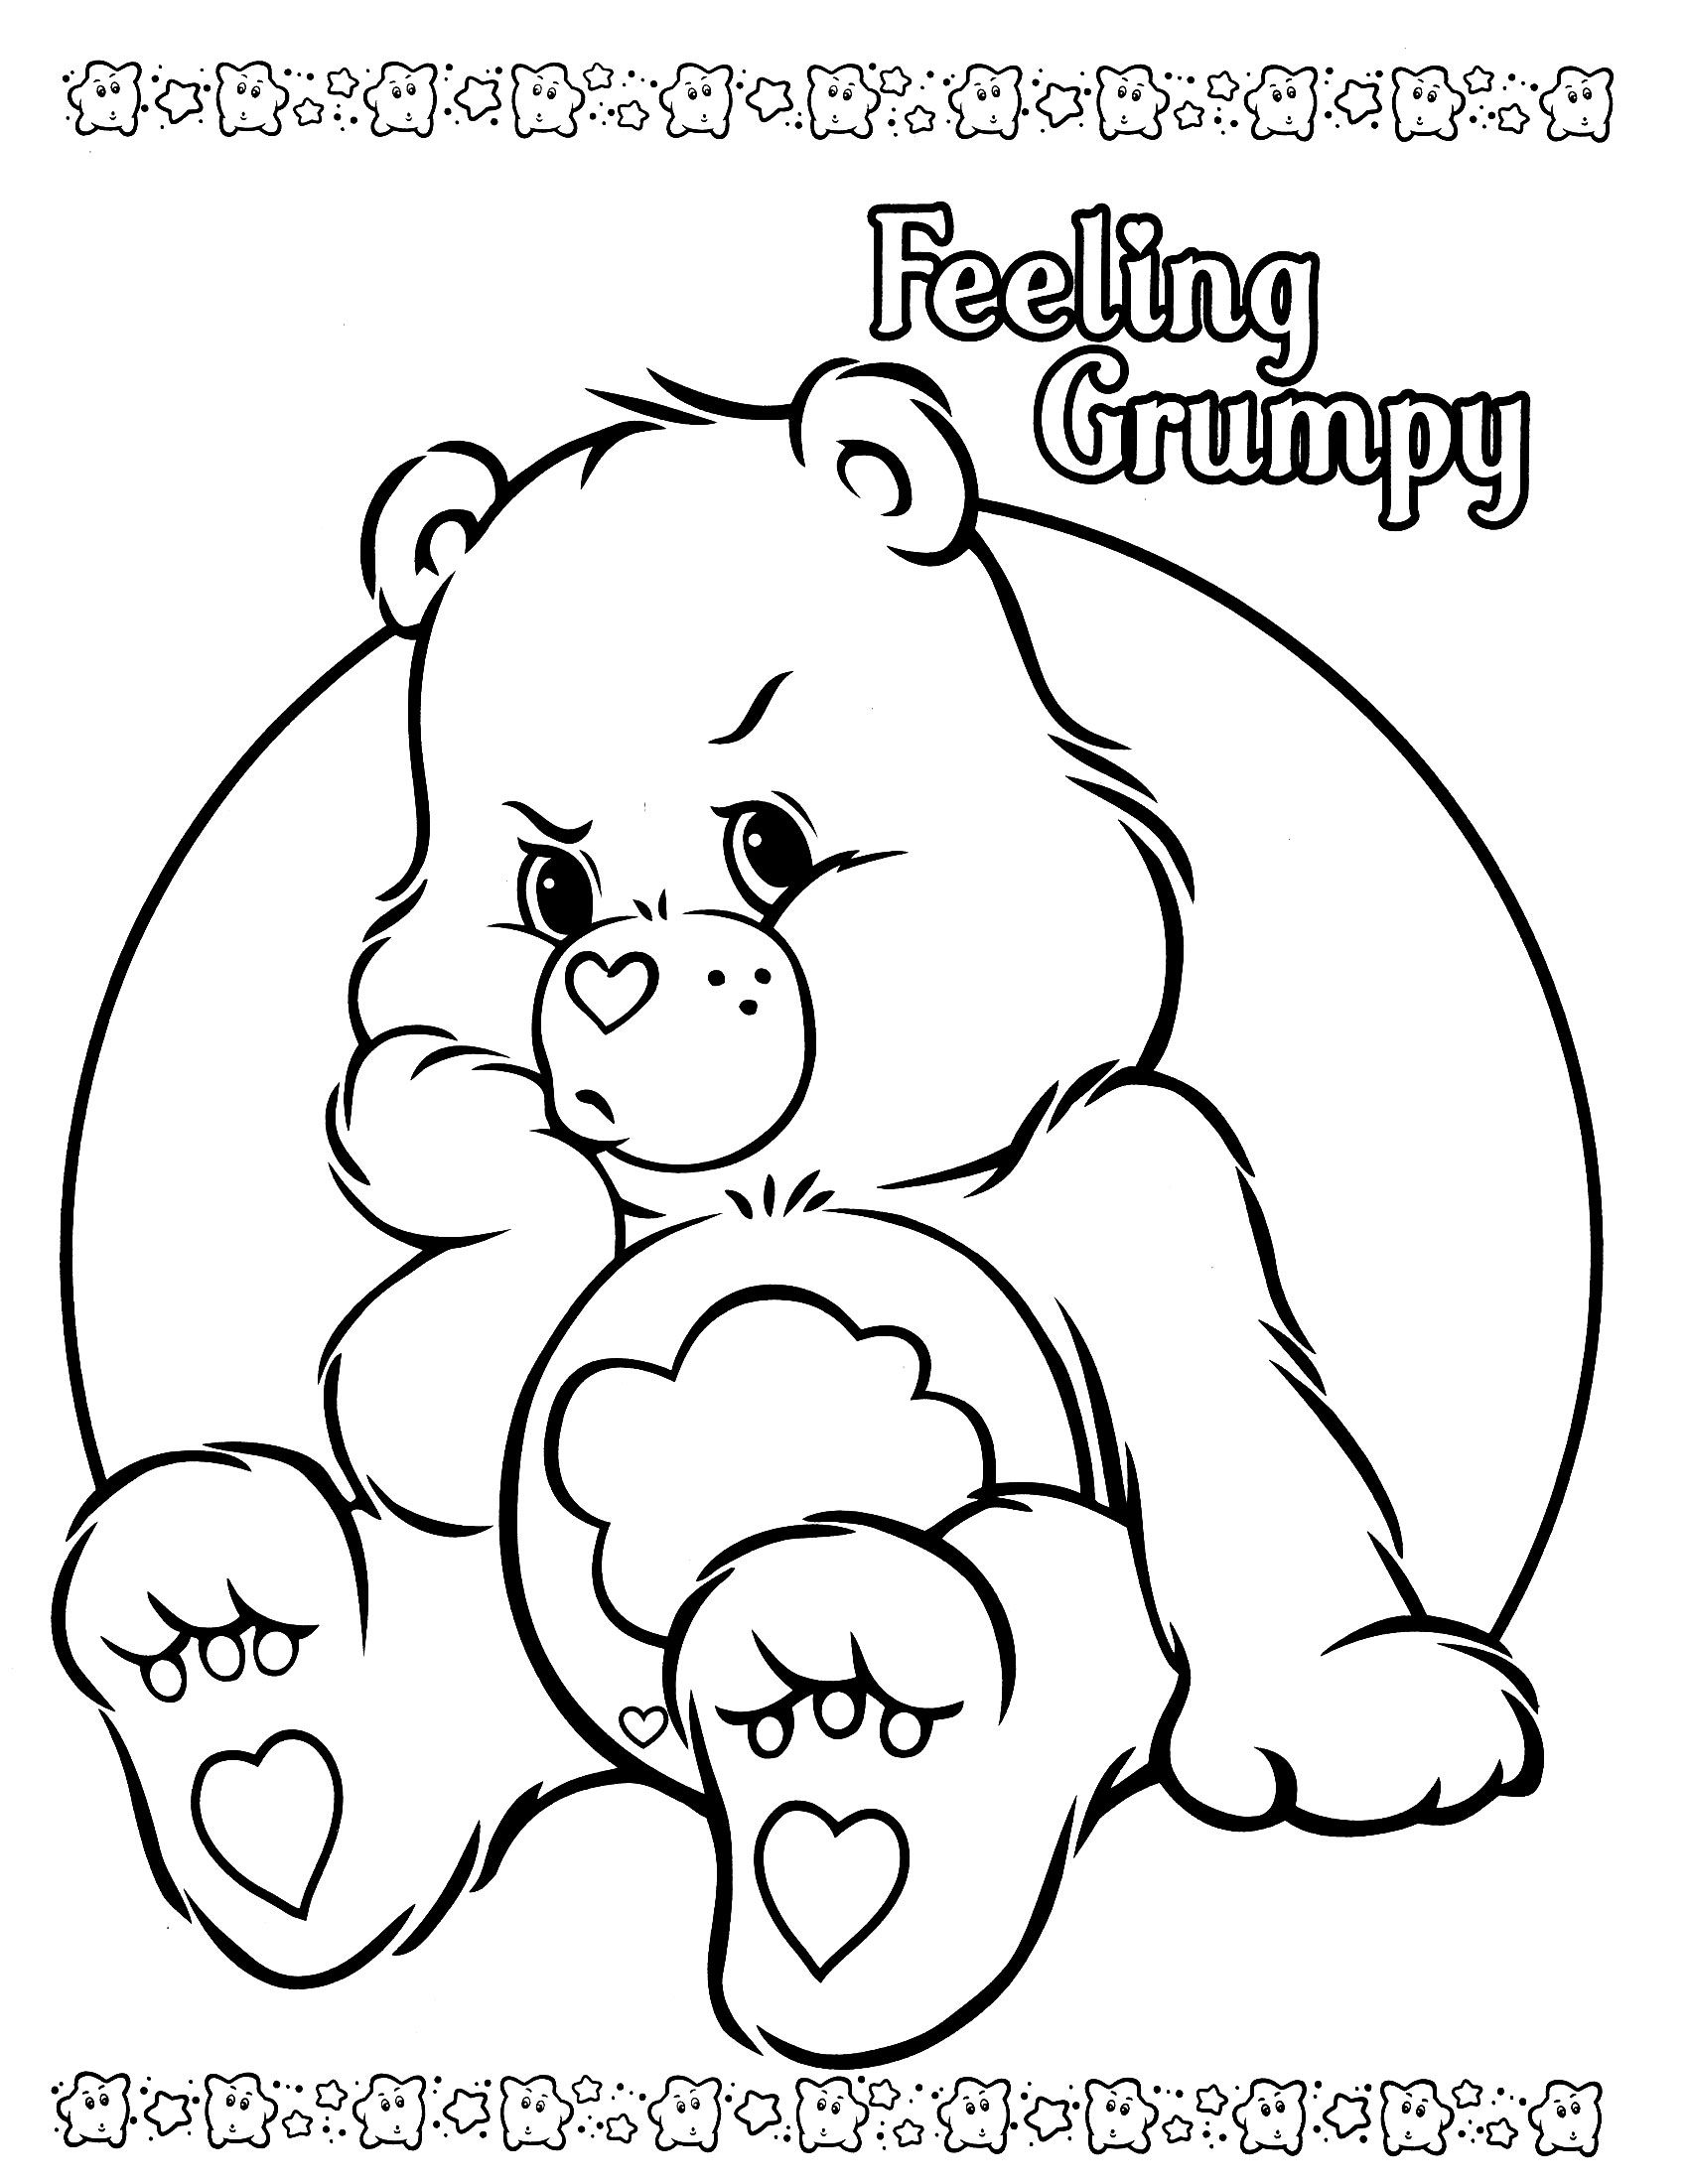 Pin By Kathy Richardson On Care Bears Bear Coloring Pages Cartoon Coloring Pages Cute Coloring Pages